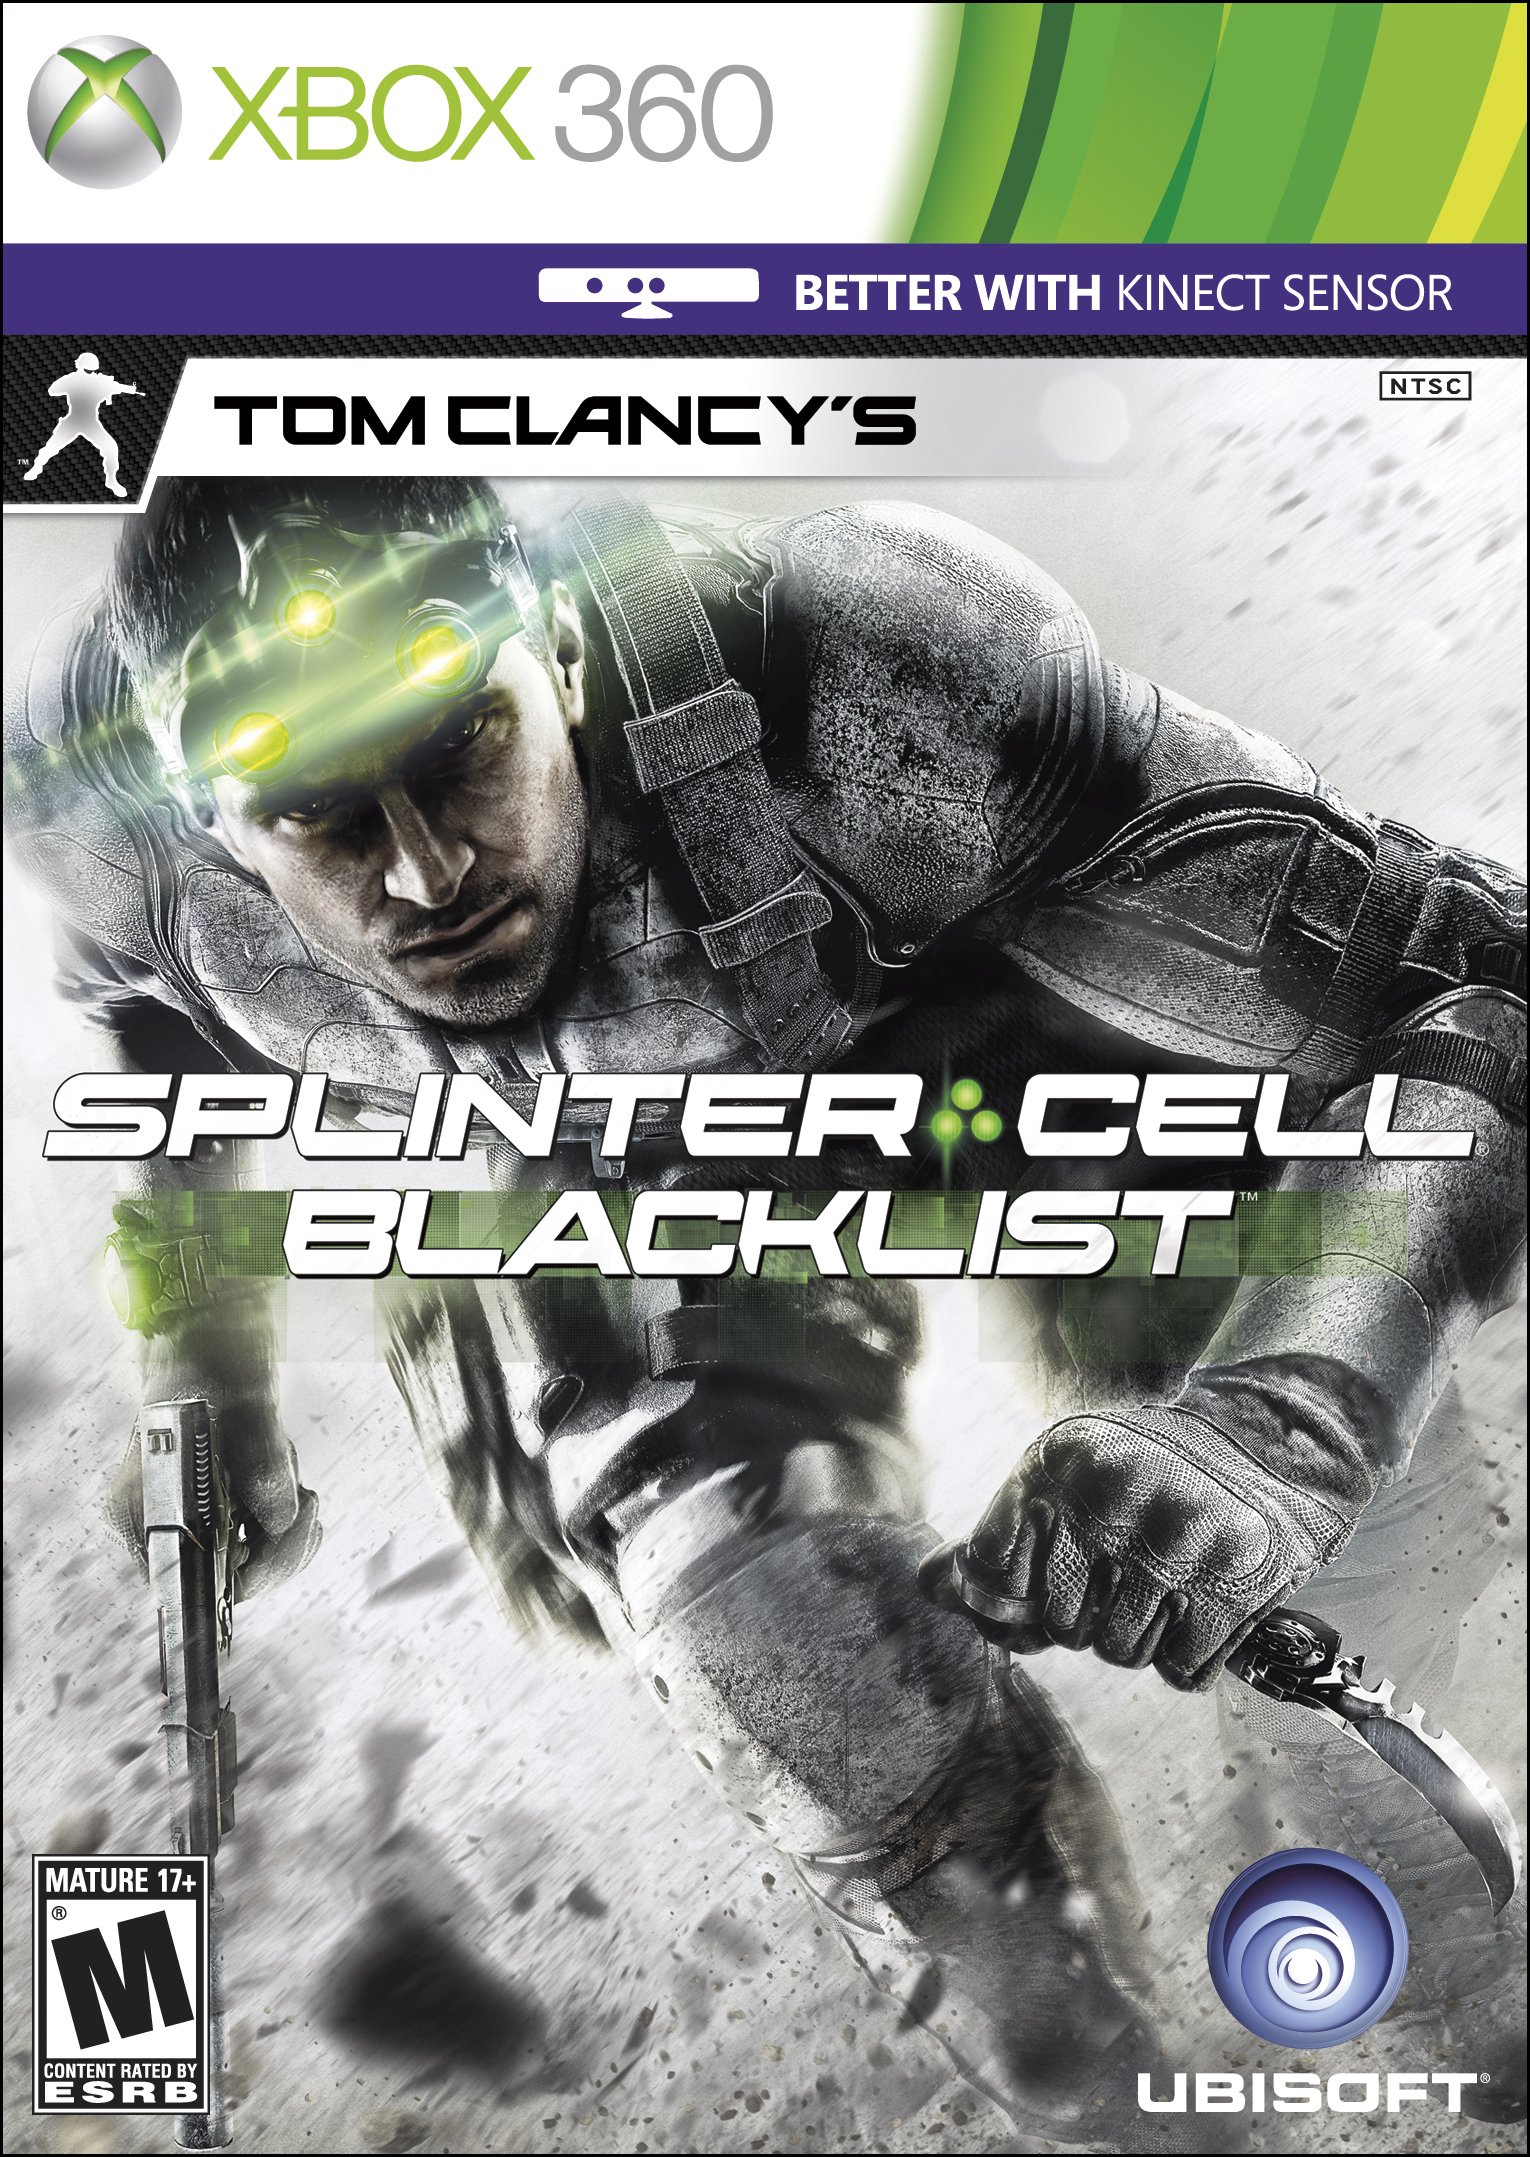 tom clancy's splinter cell blacklist release date (xbox 360, ps3, pc